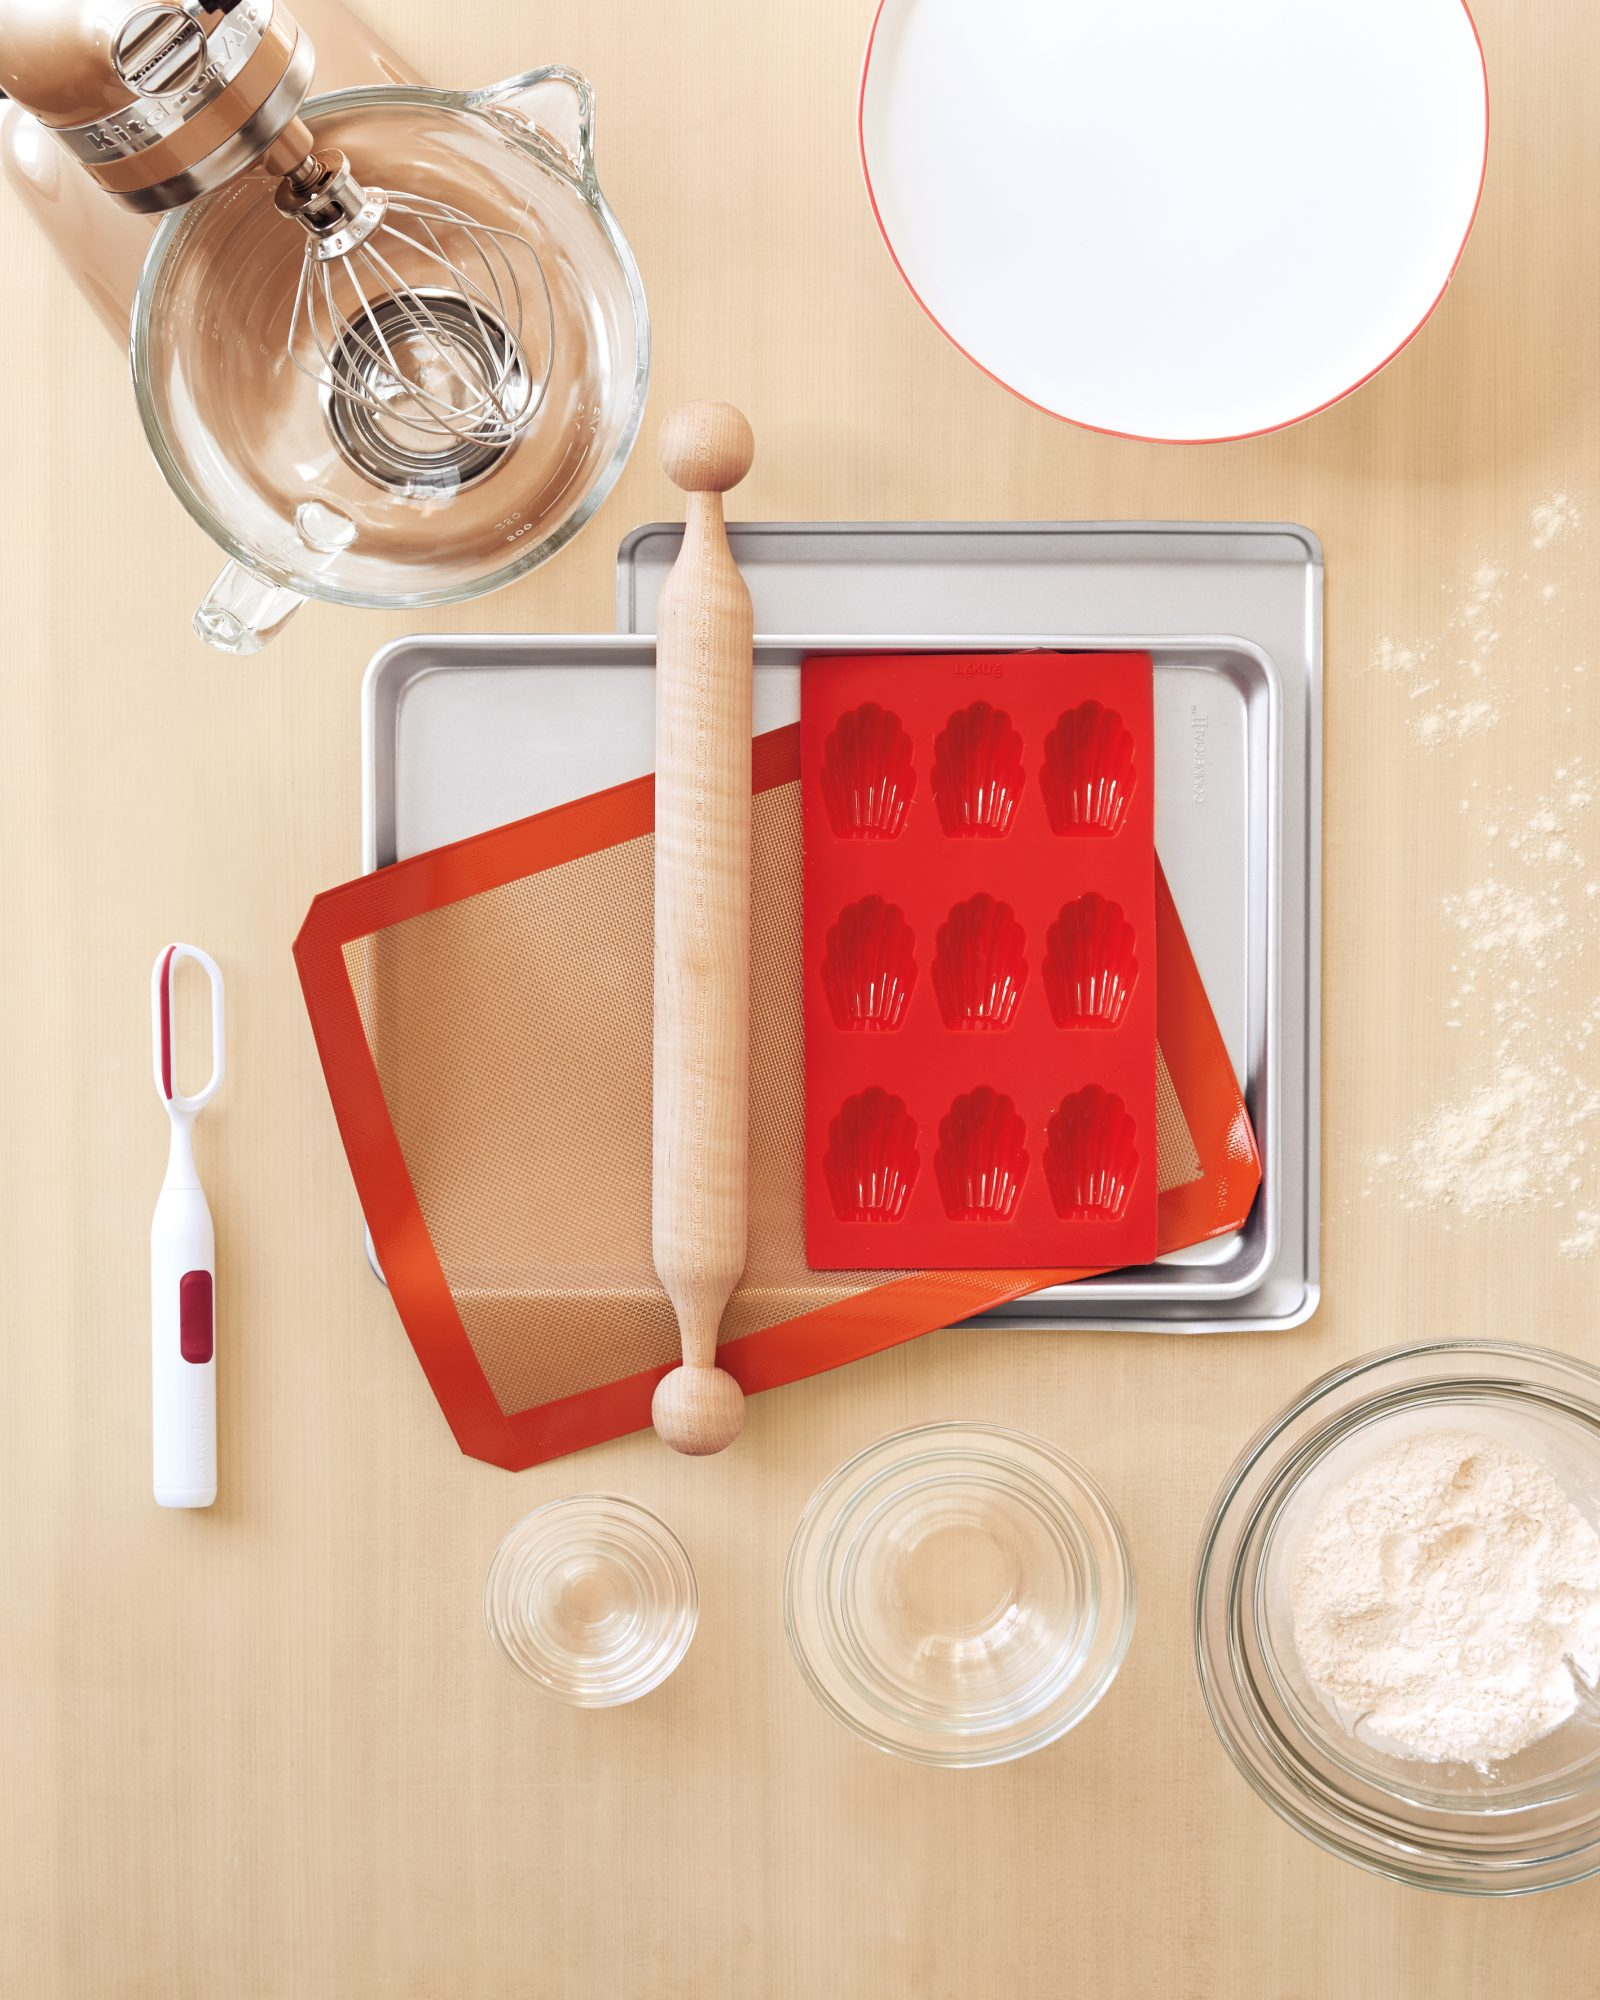 baking-supplies-067-d111983.jpg